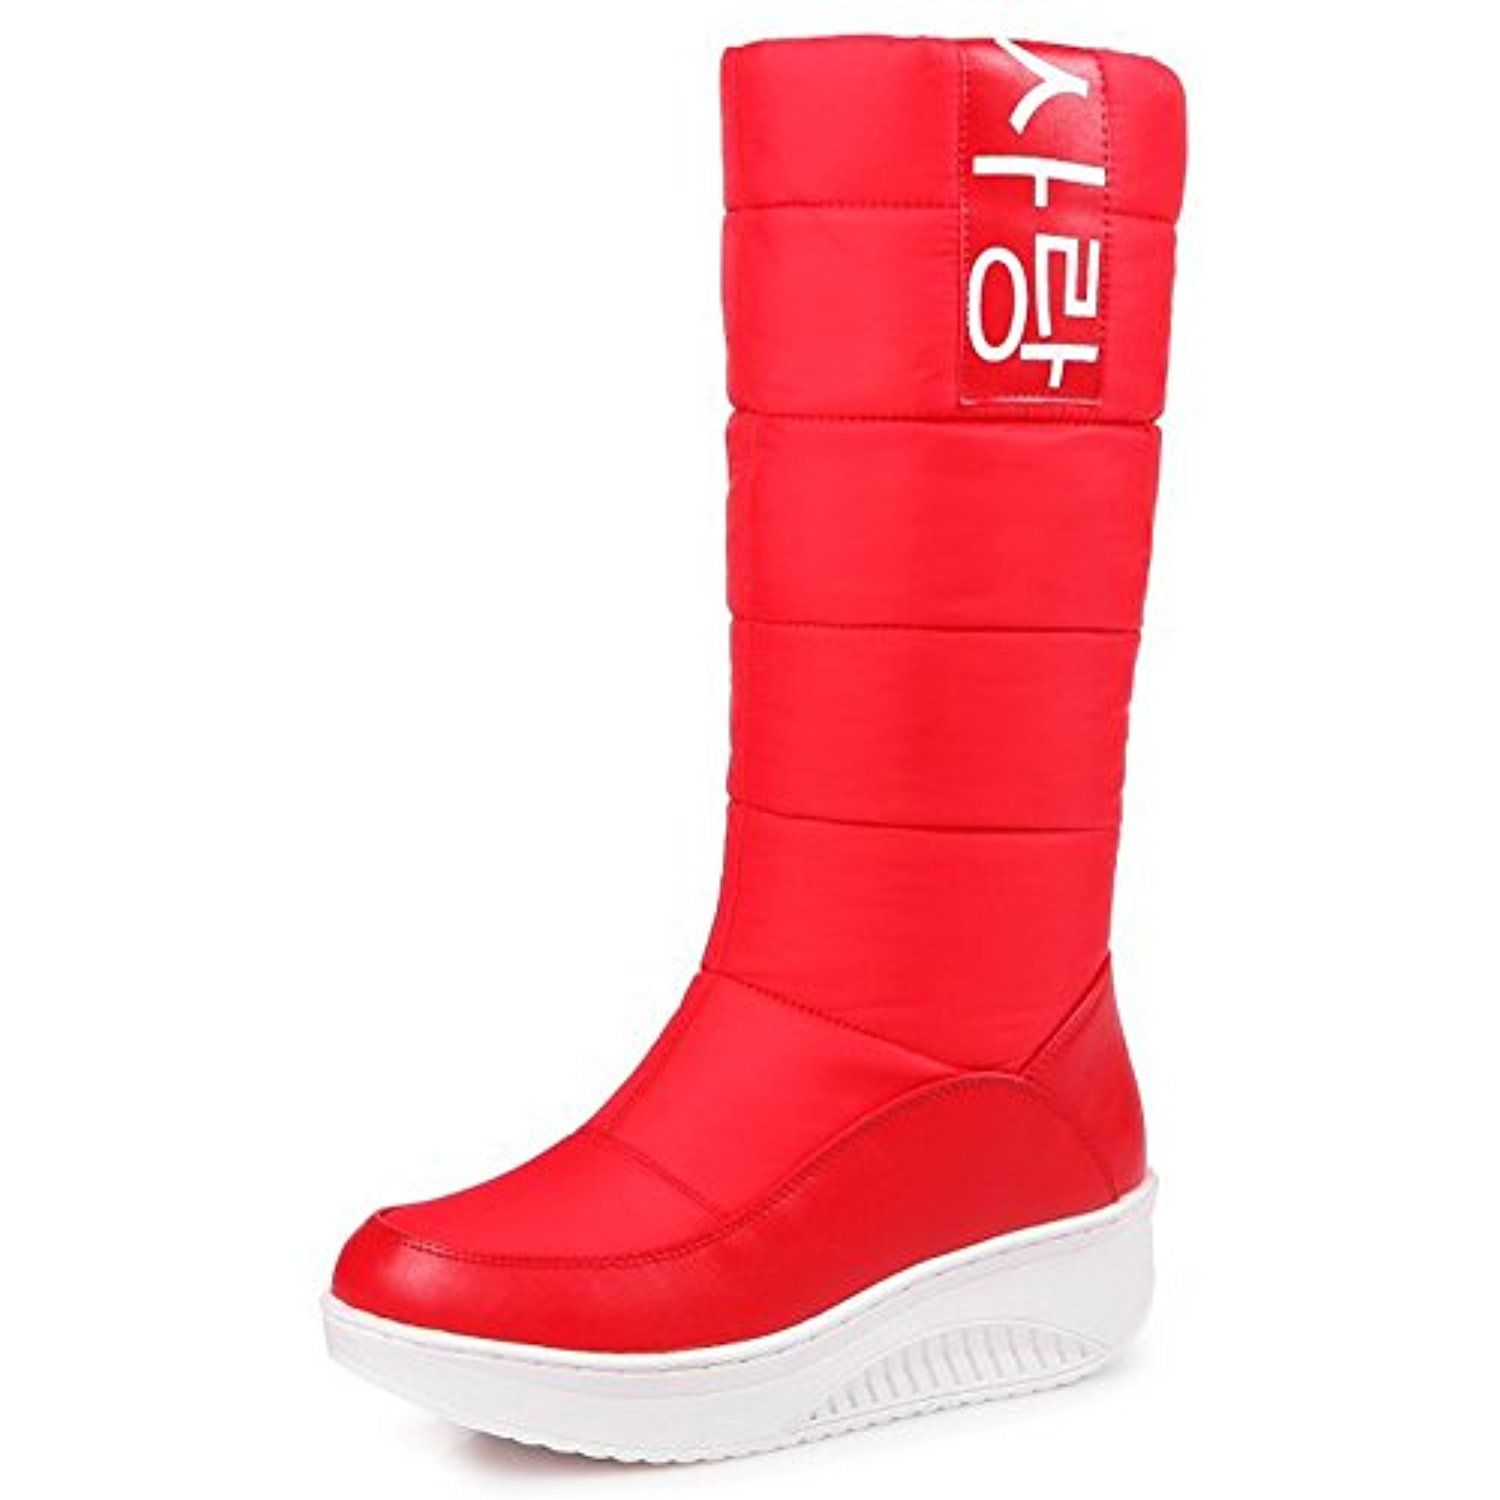 Women's Casual Print Round Toe Warm Fleece Lined Anti Skid Platform Slip on Mid Calf Snow Boots Shoes